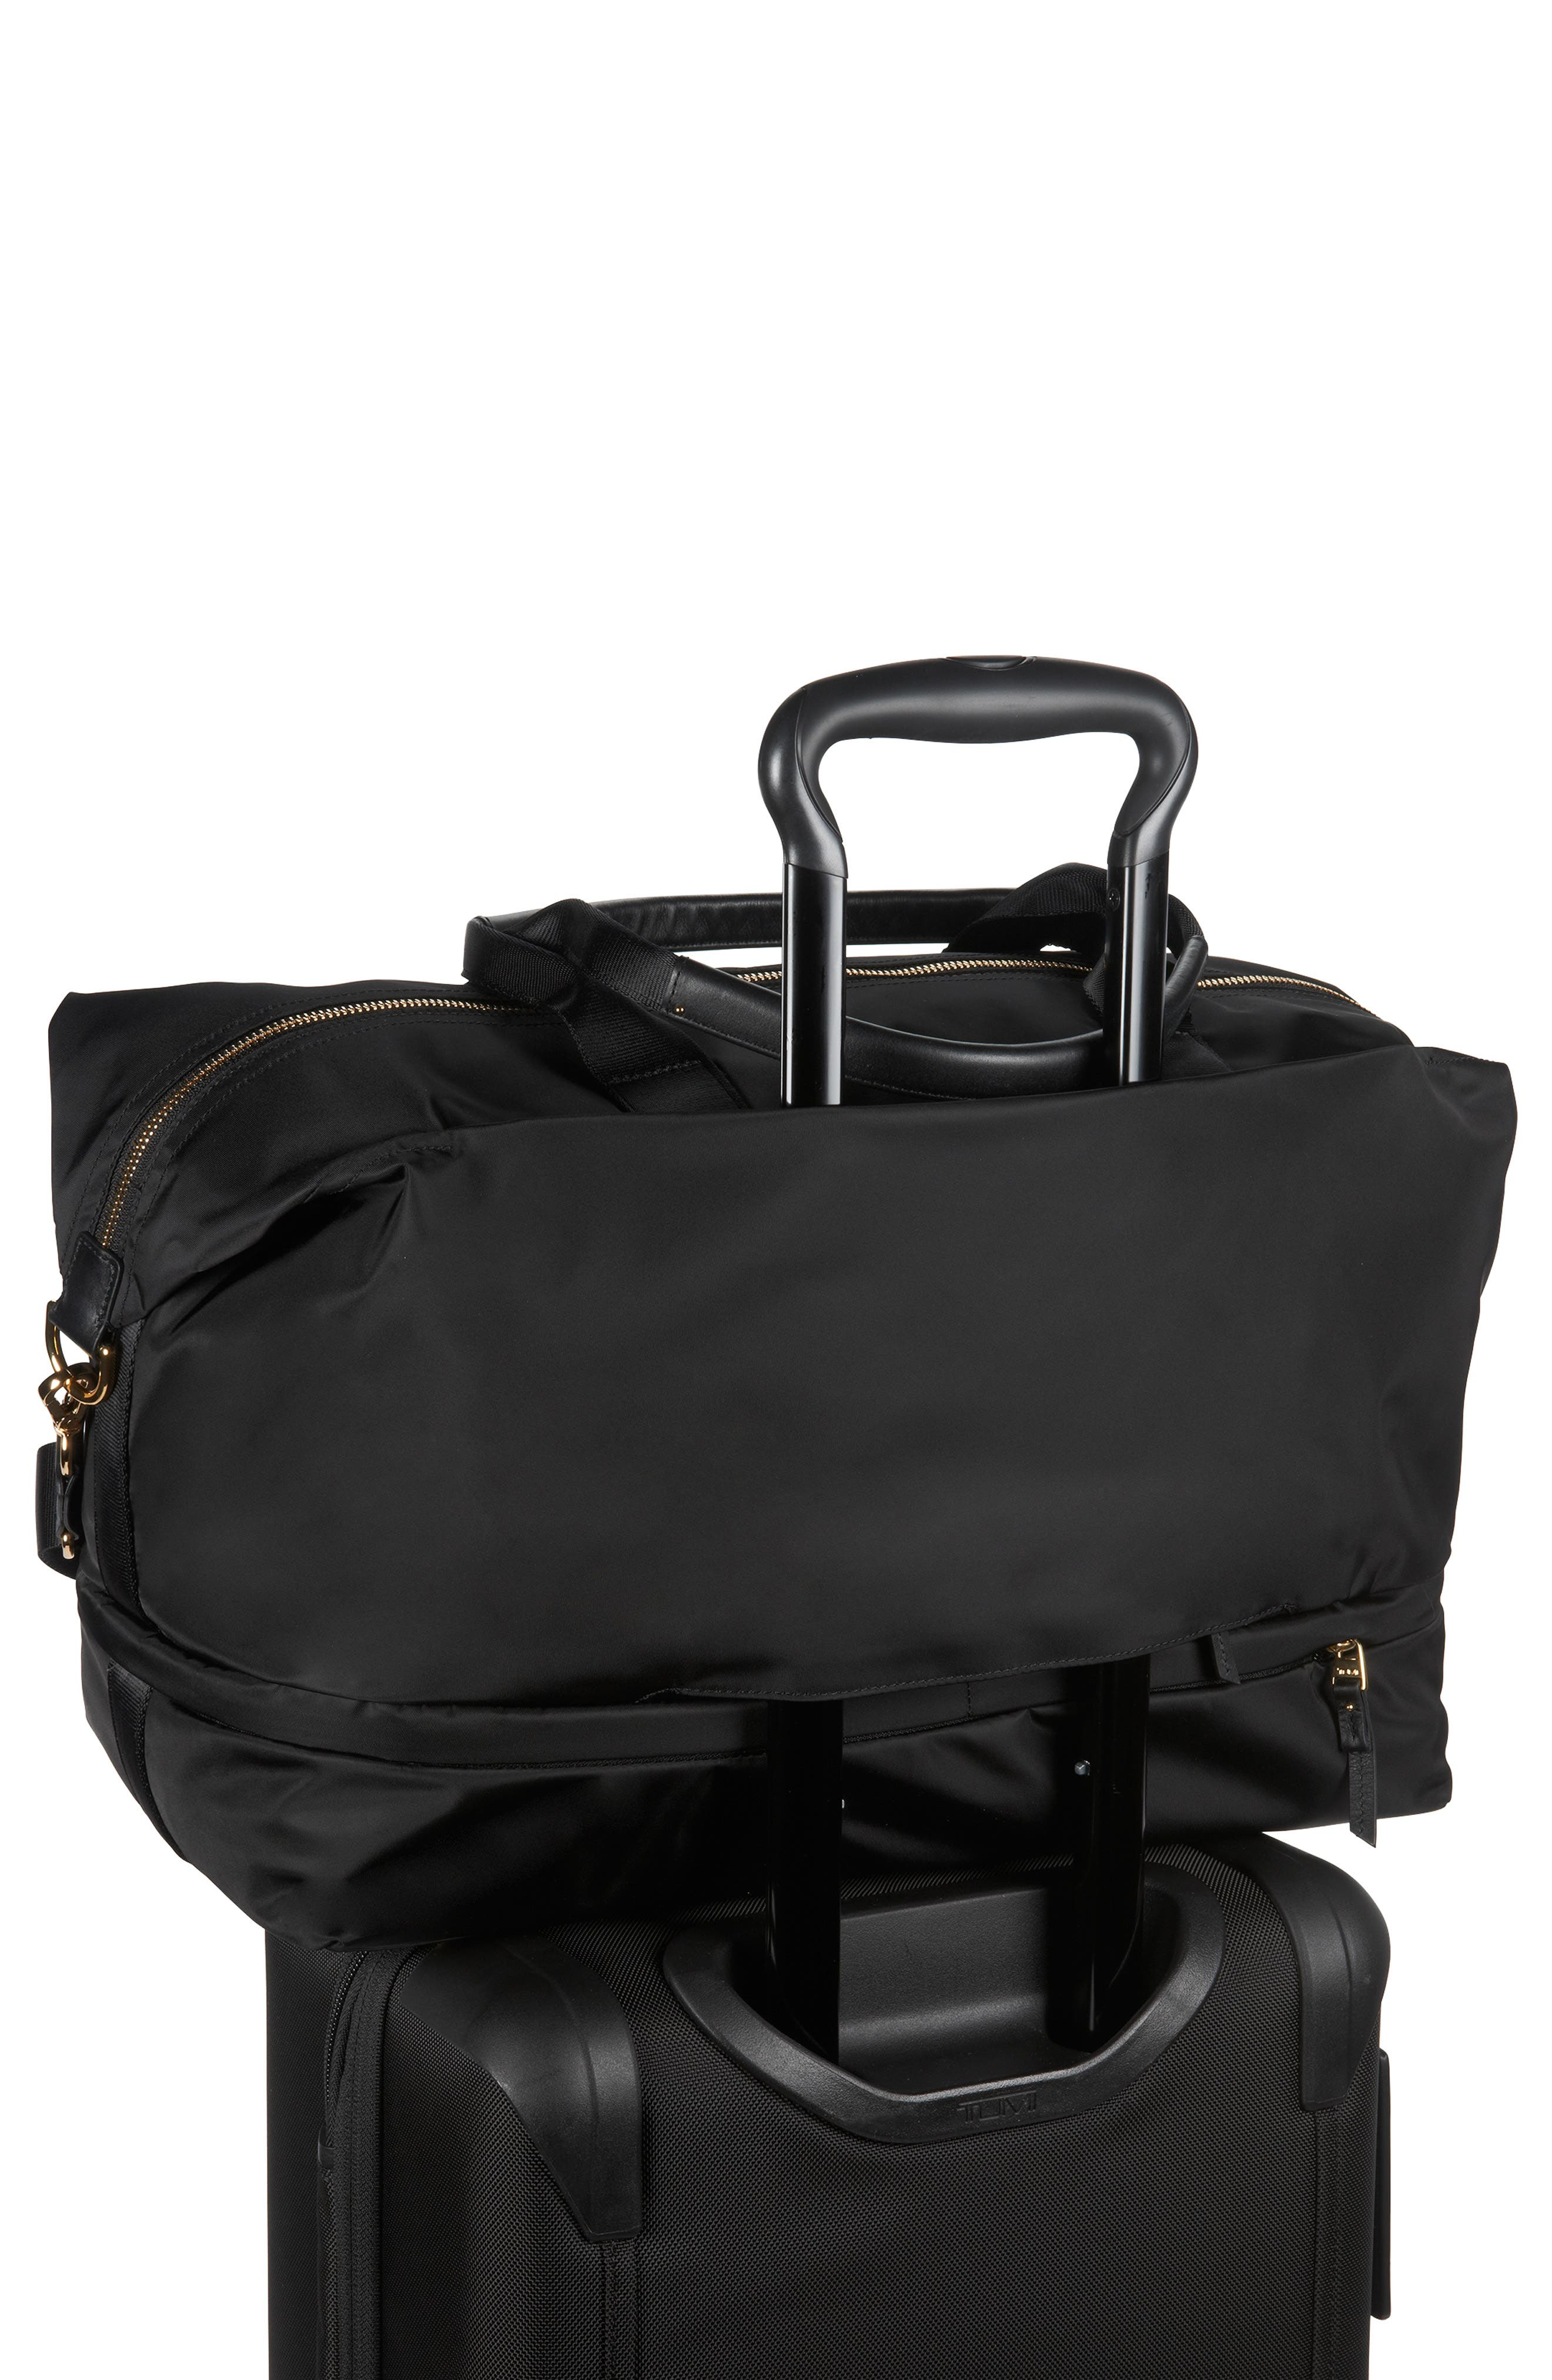 Durban Expandable Duffel Bag,                             Alternate thumbnail 6, color,                             001